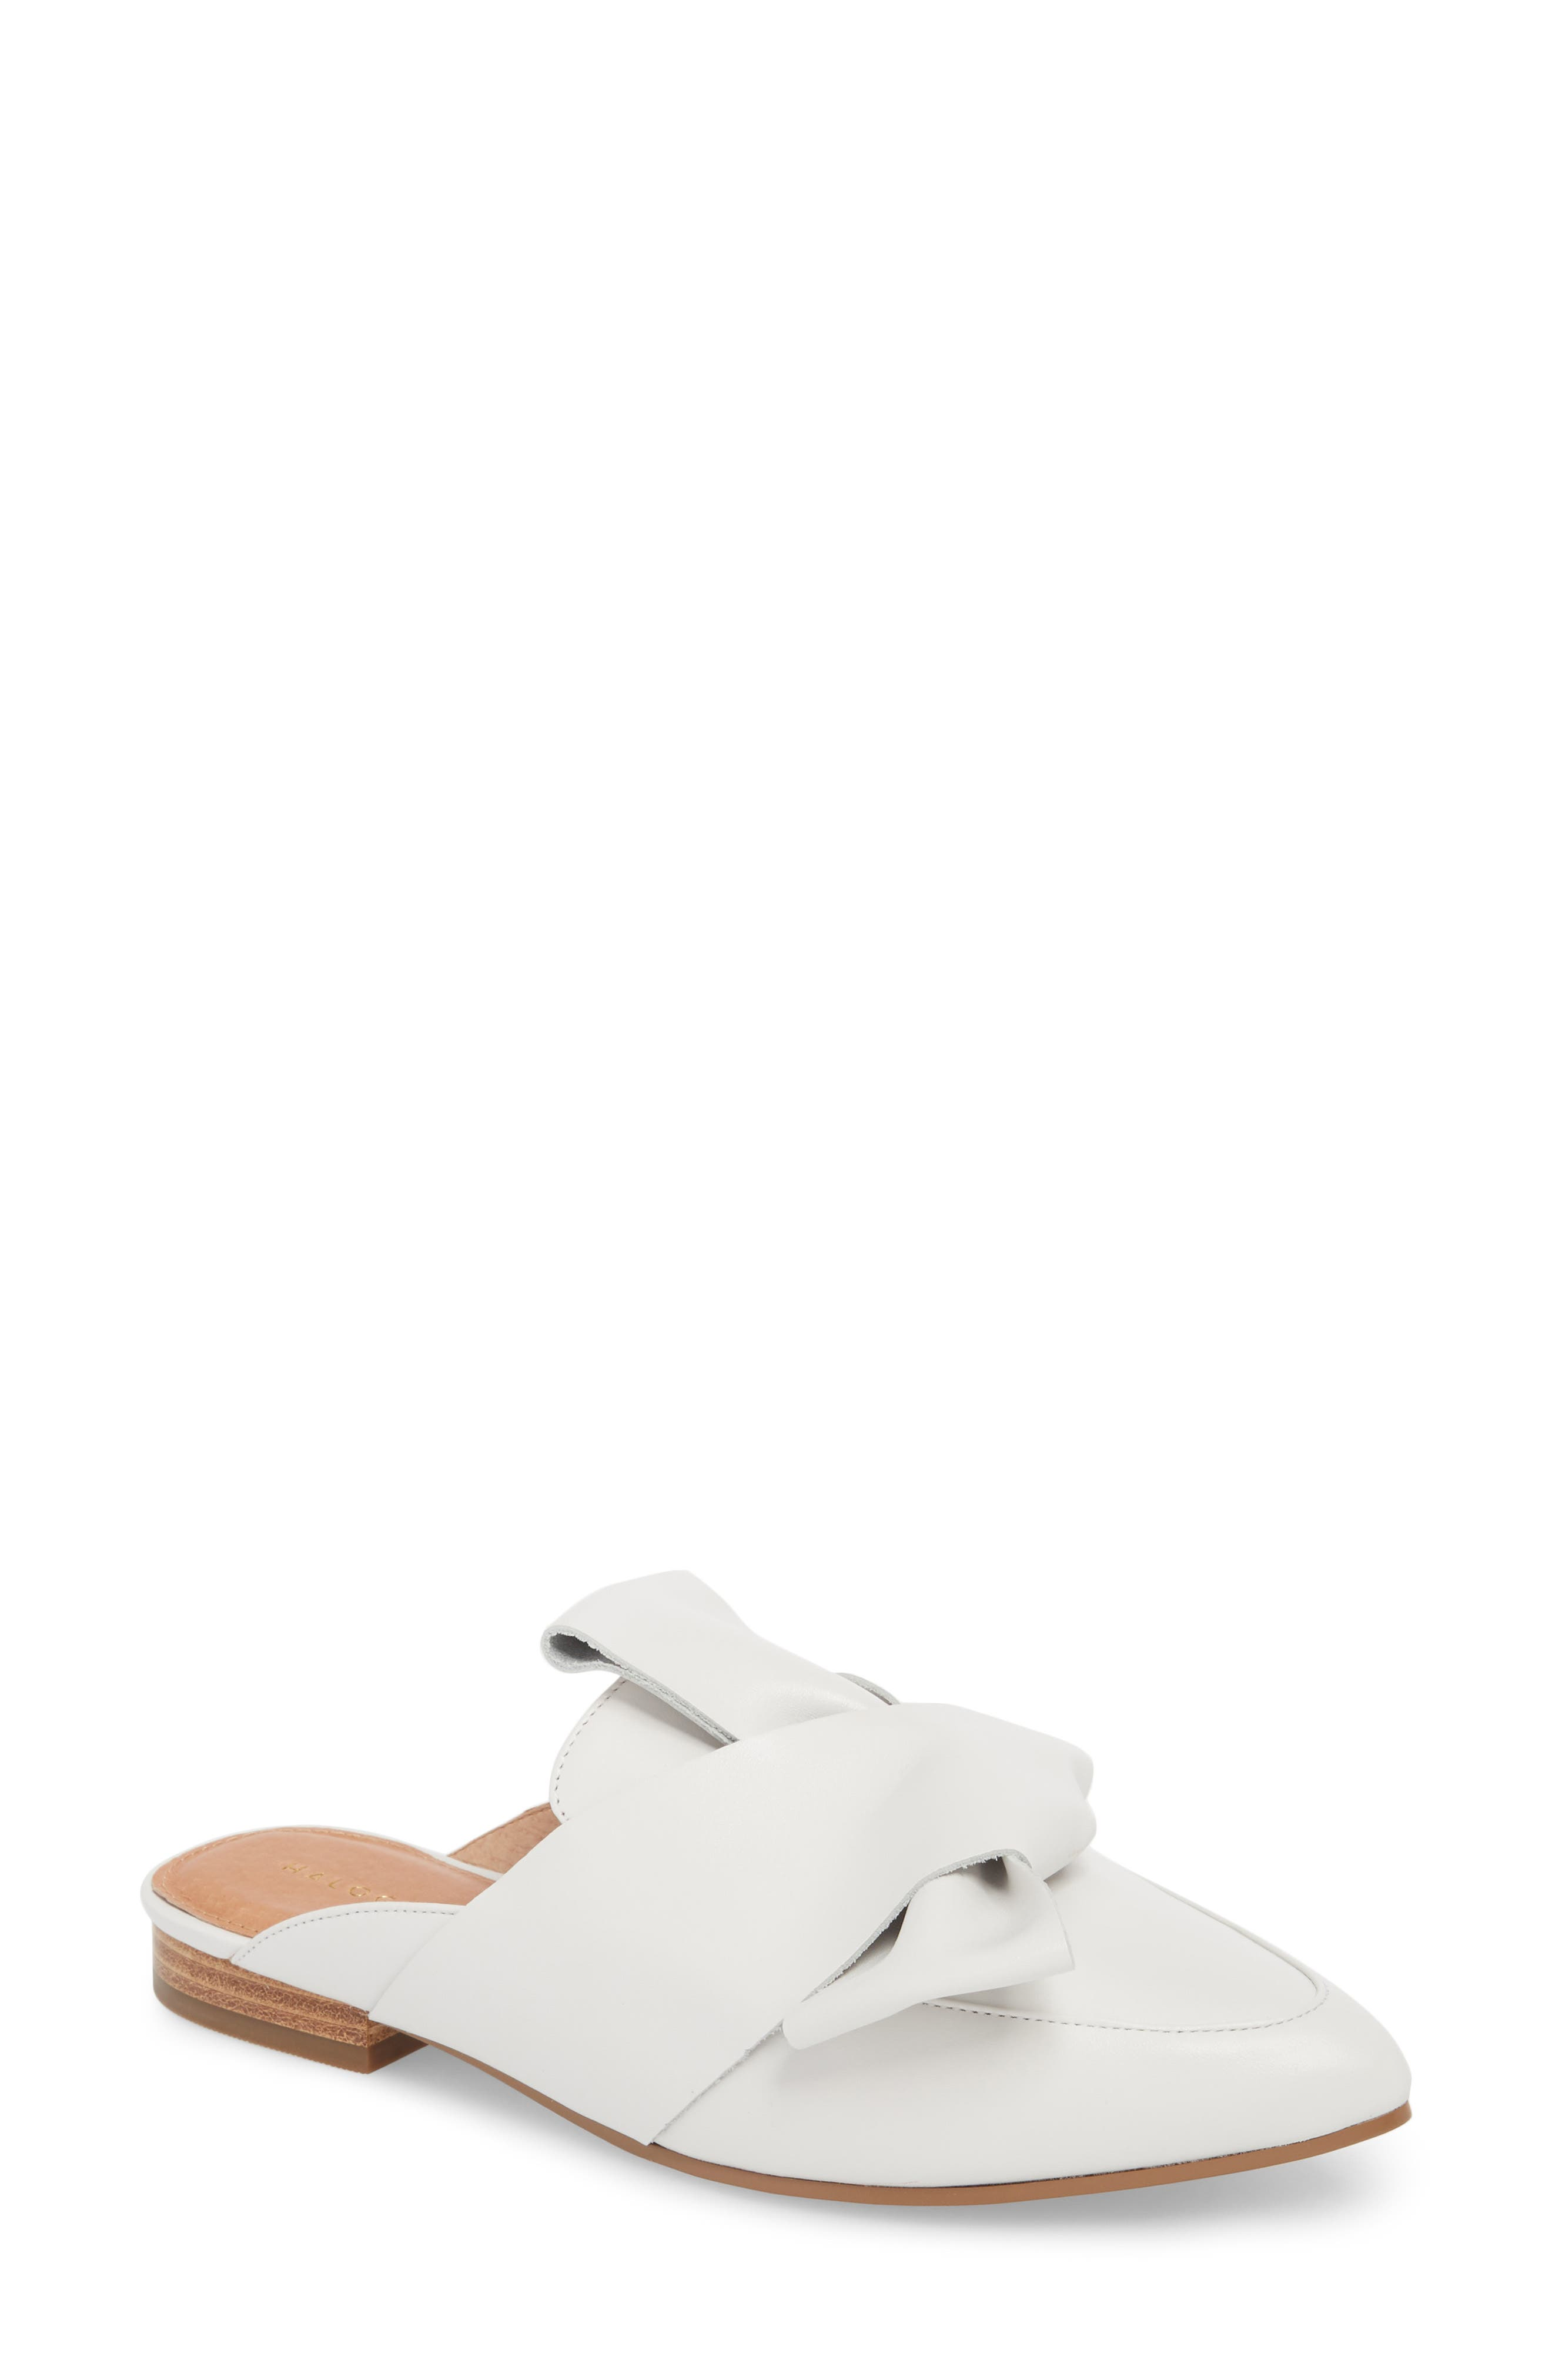 Coral Mule,                             Main thumbnail 1, color,                             White Leather